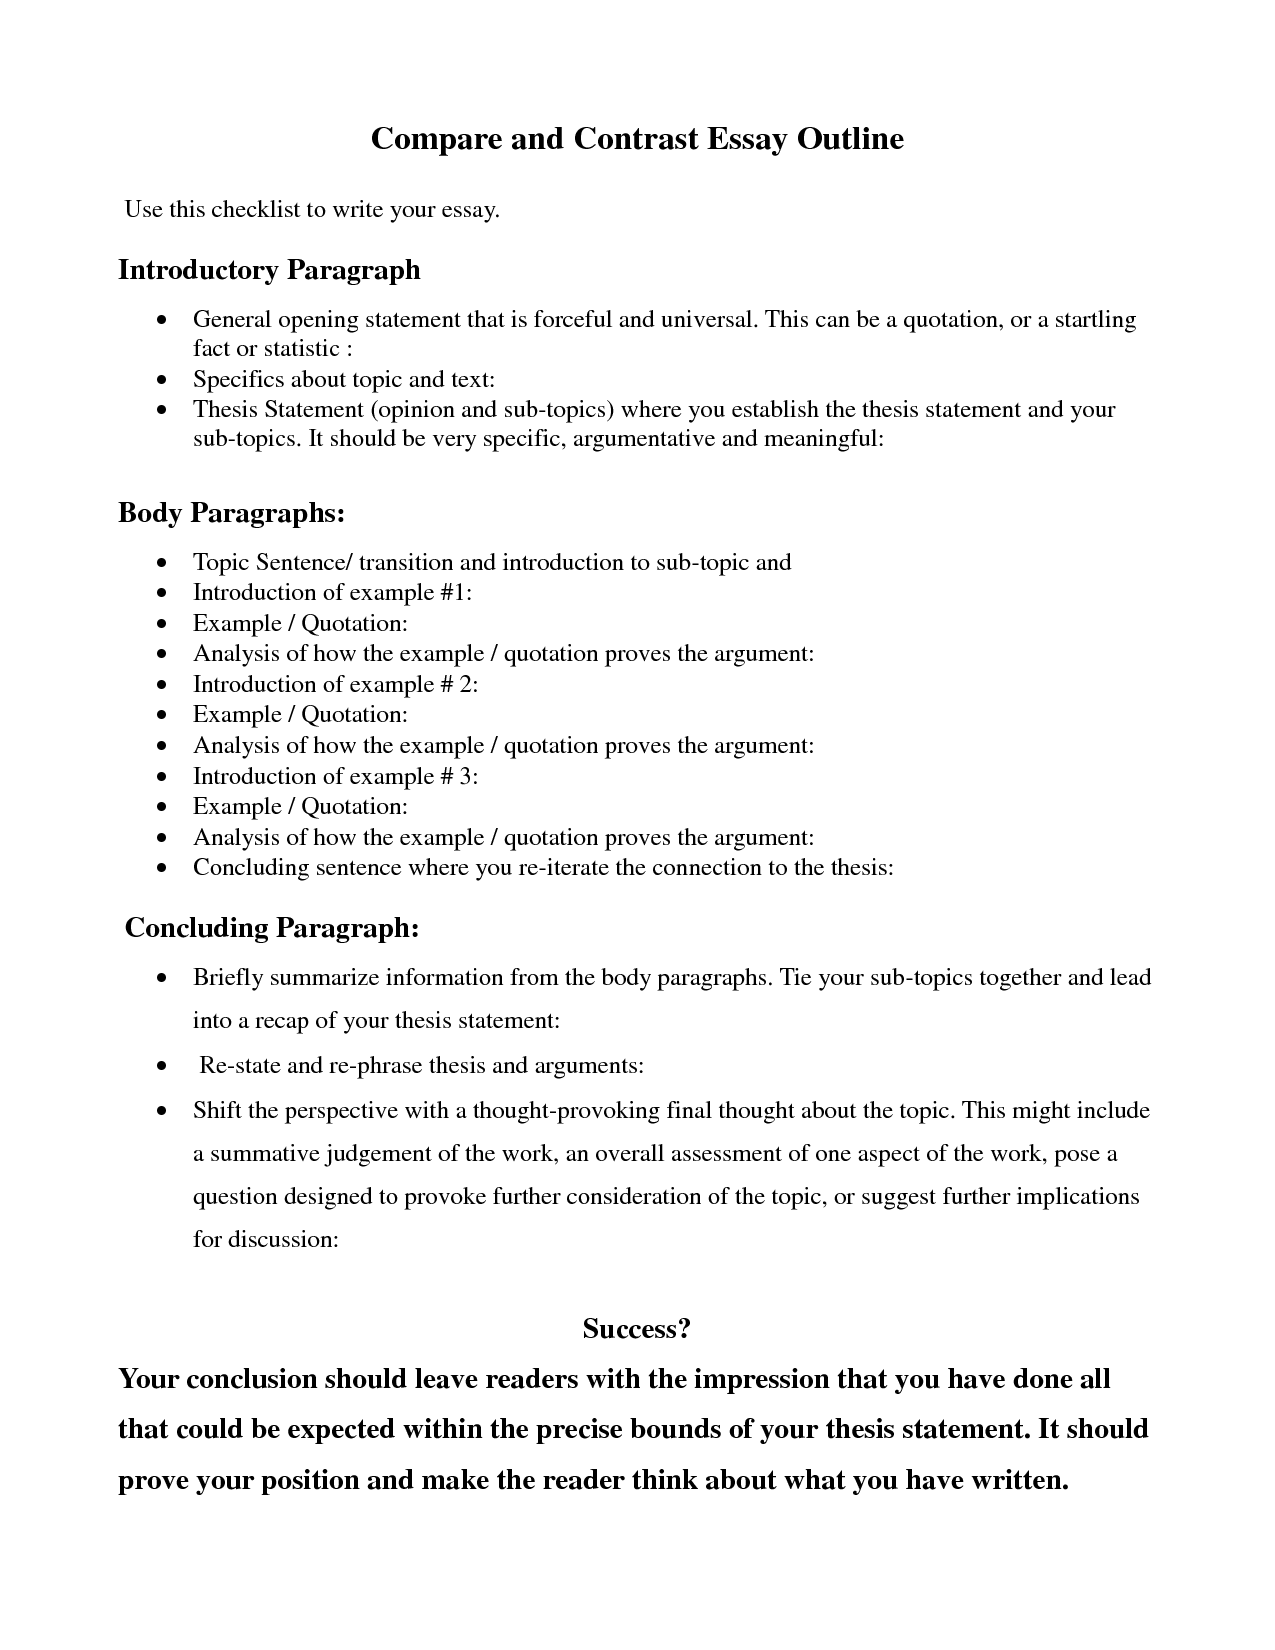 Comparecontrast Essay Outline  Google Search  Education  Thesis For A Narrative Essay Topics For A Proposal Essay Comparecontrast Essay Outline  Google Search  Education  What Is Business Ethics Essay also Essay English Example